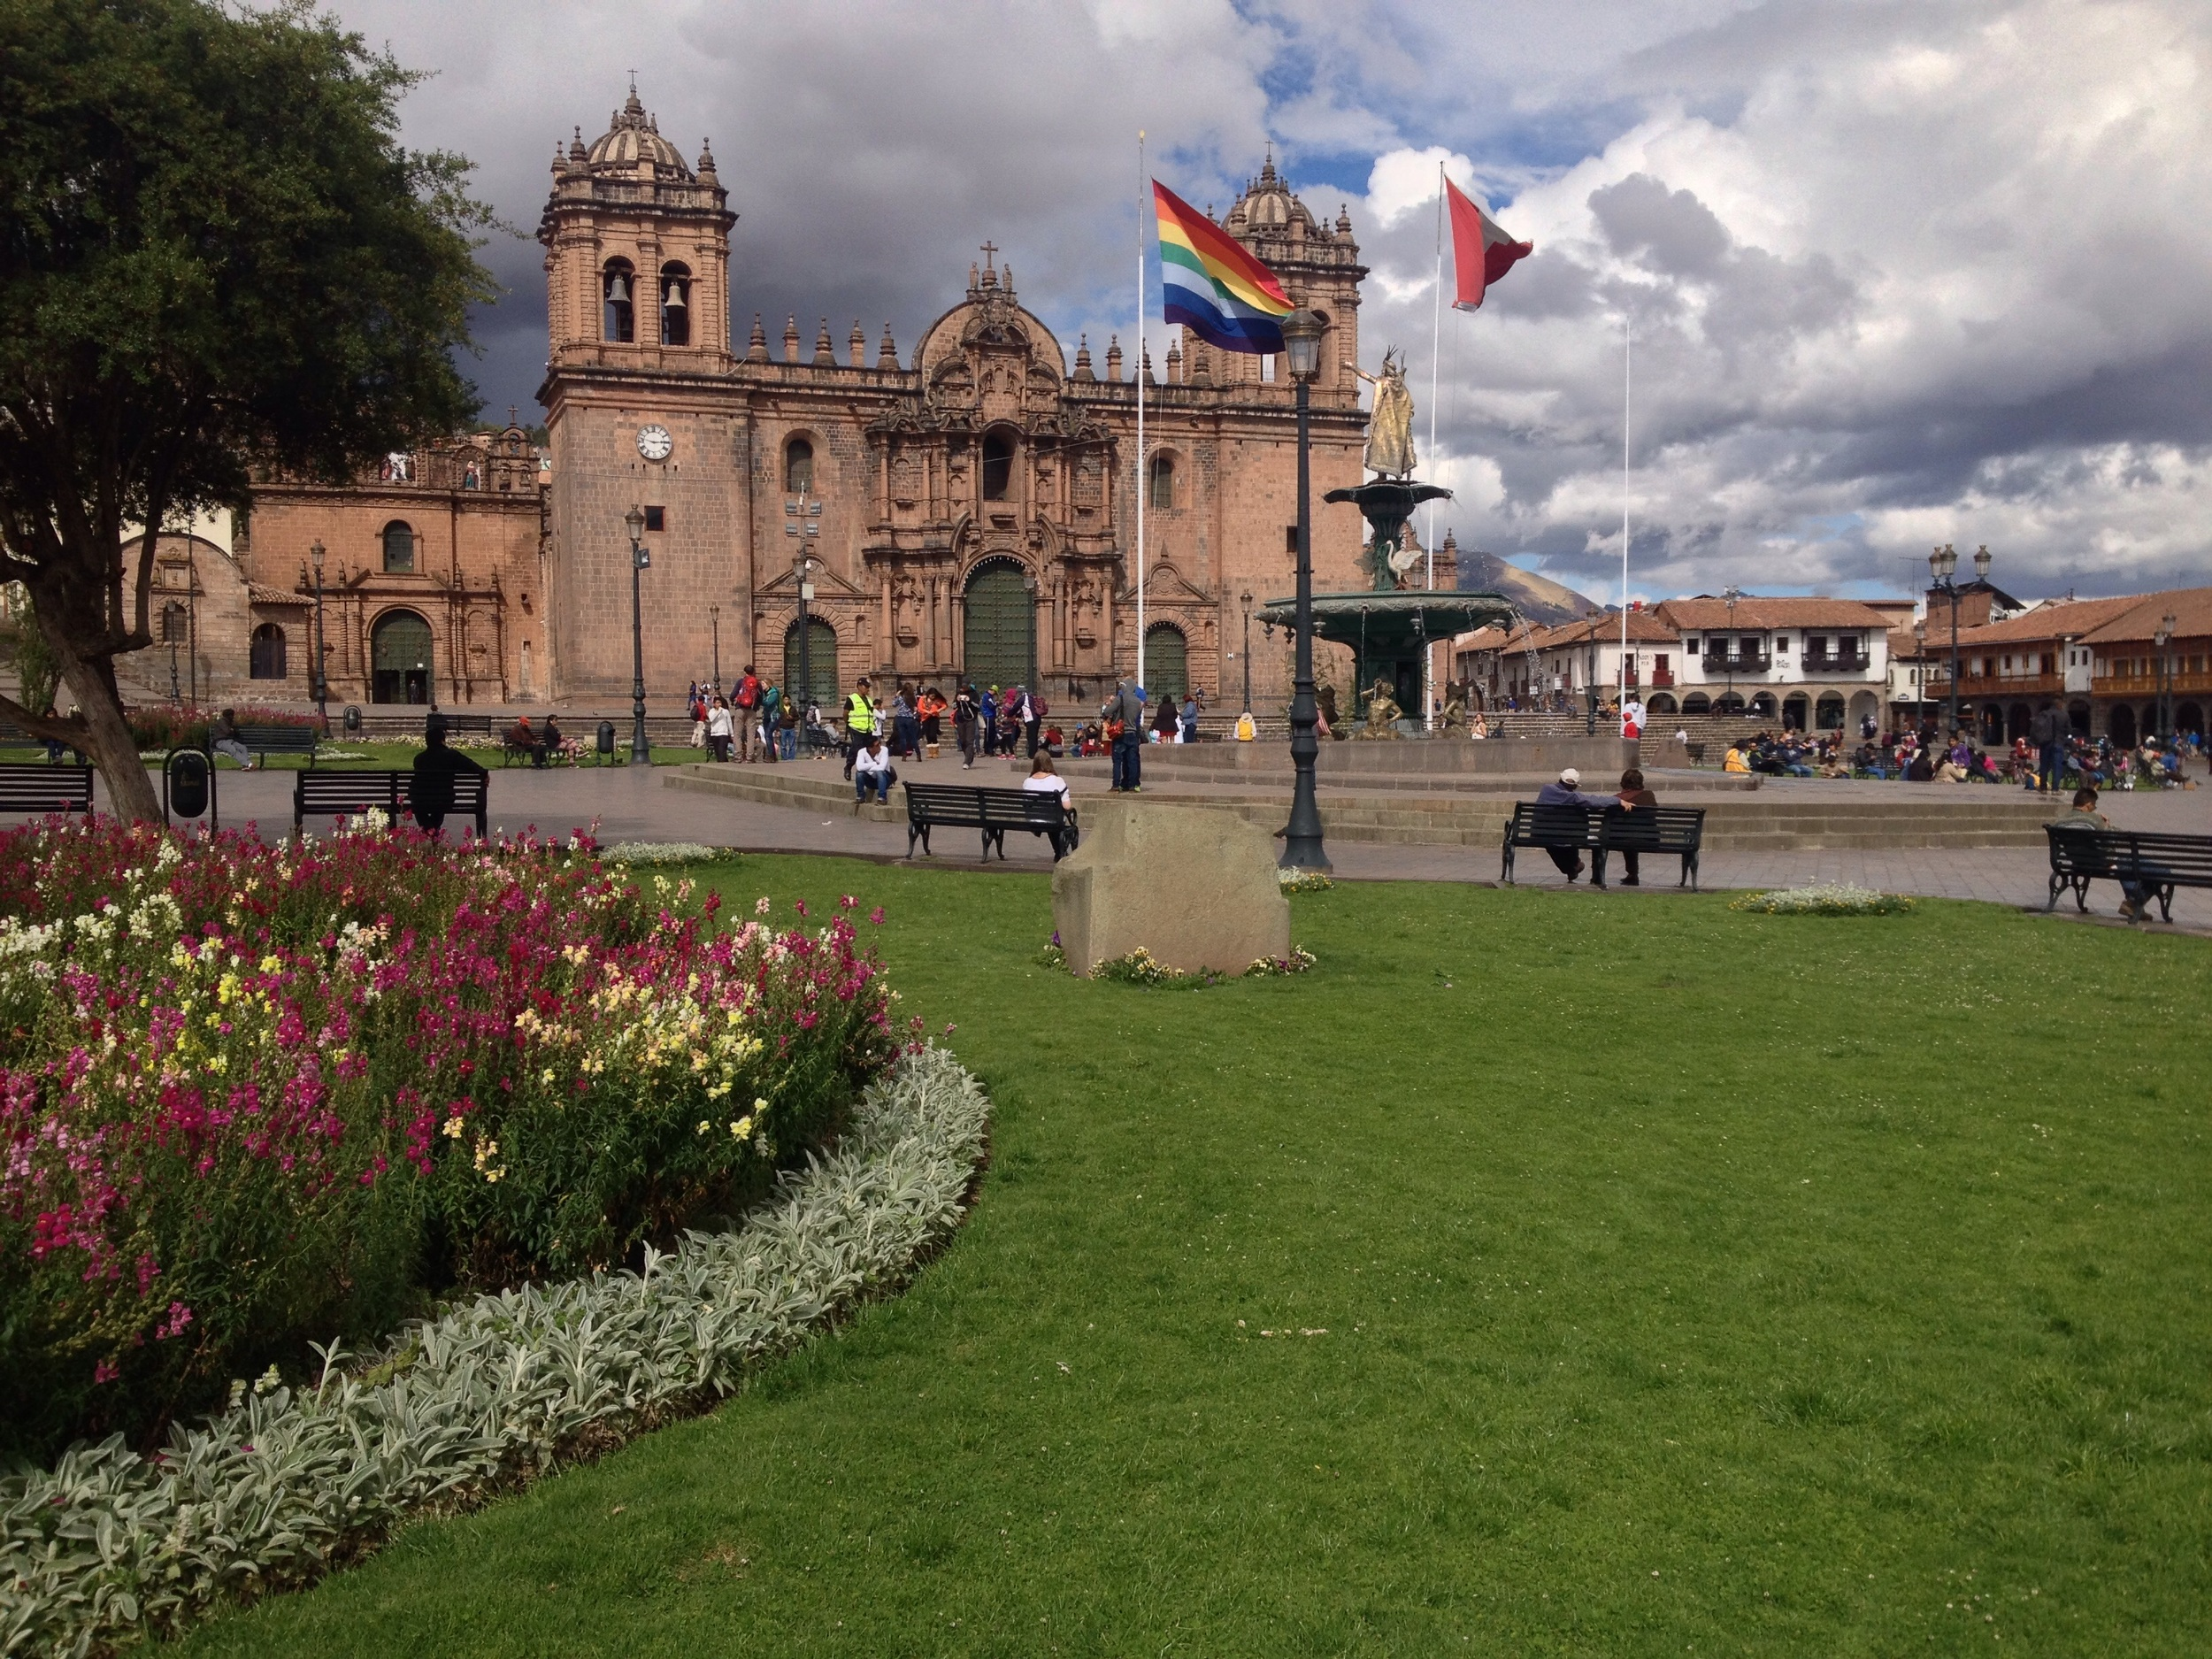 Plaza de Armas is full of tourists, hawkers and police.